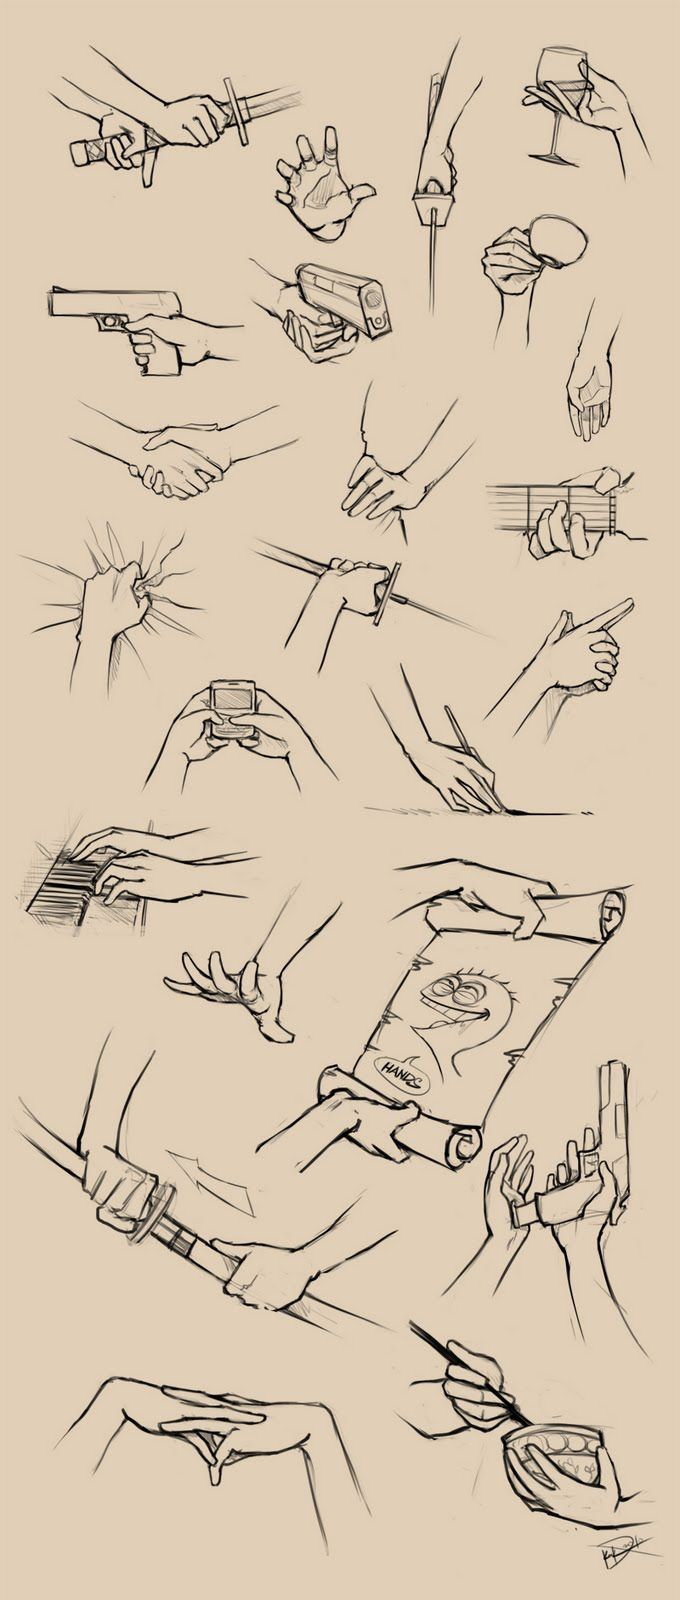 How To Draw Hands Gripping Bunch Of Things I Love How Cheese From Fosters  Home